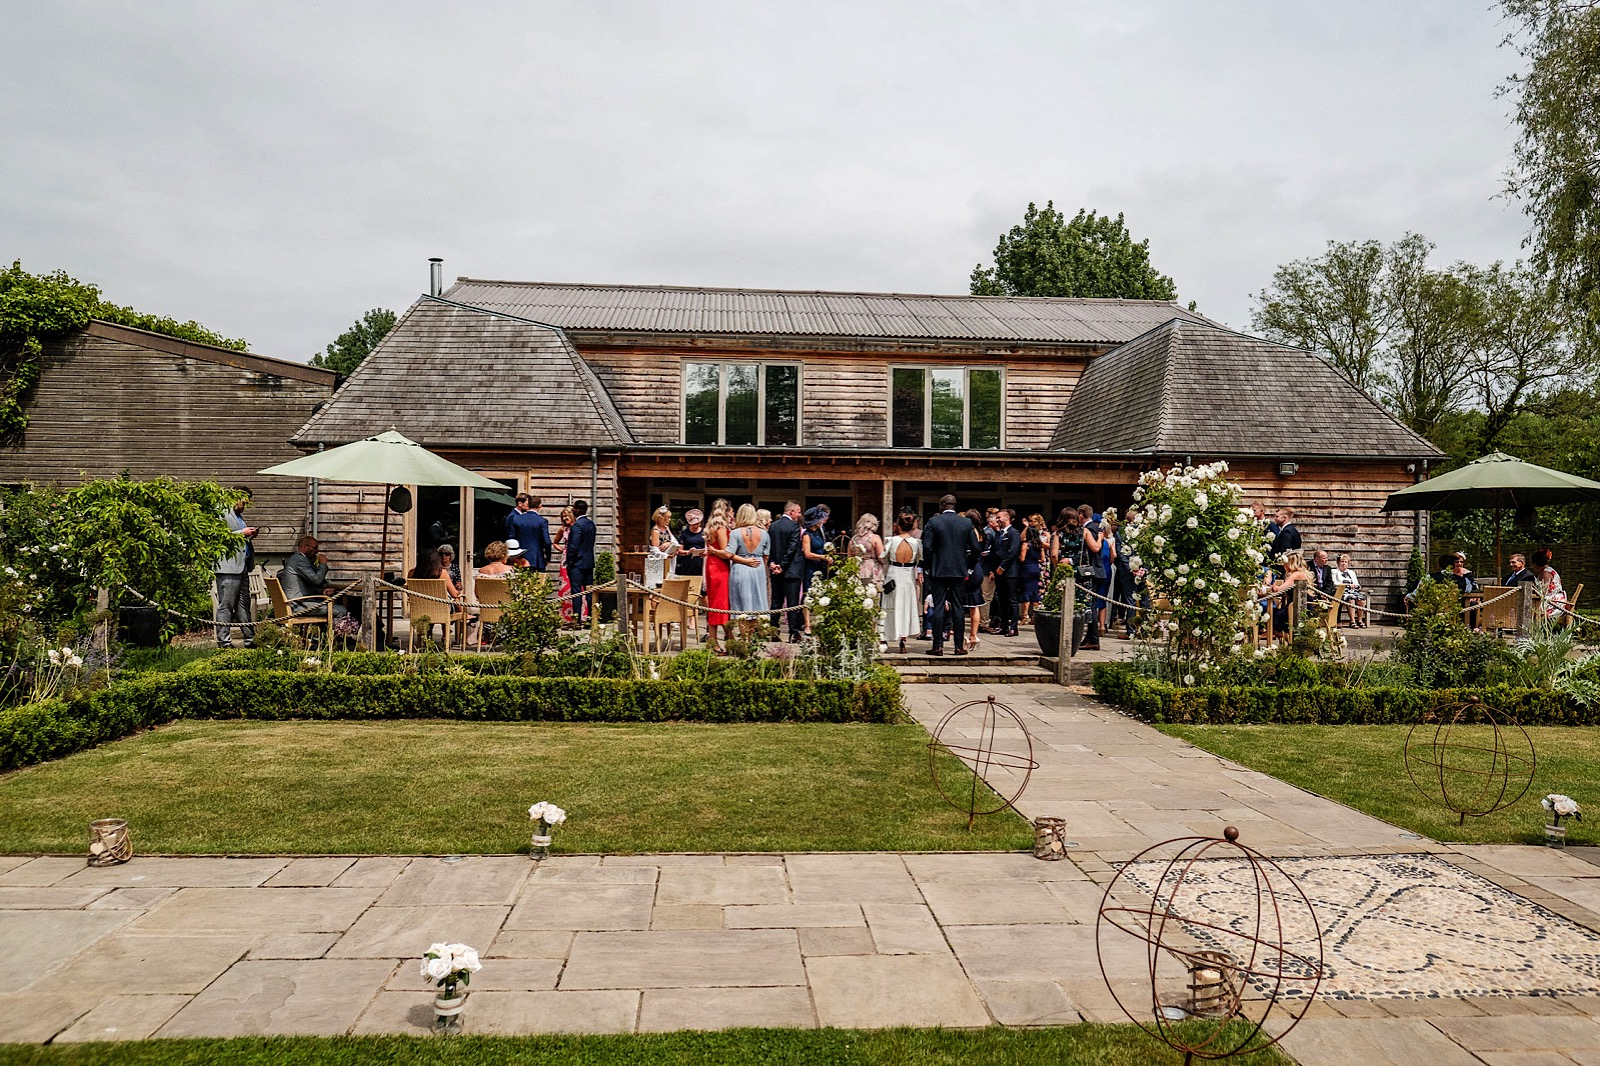 Photo of wedding guests waiting outside in the gardens of the Barn at Houchins Farm in Colchester Essex